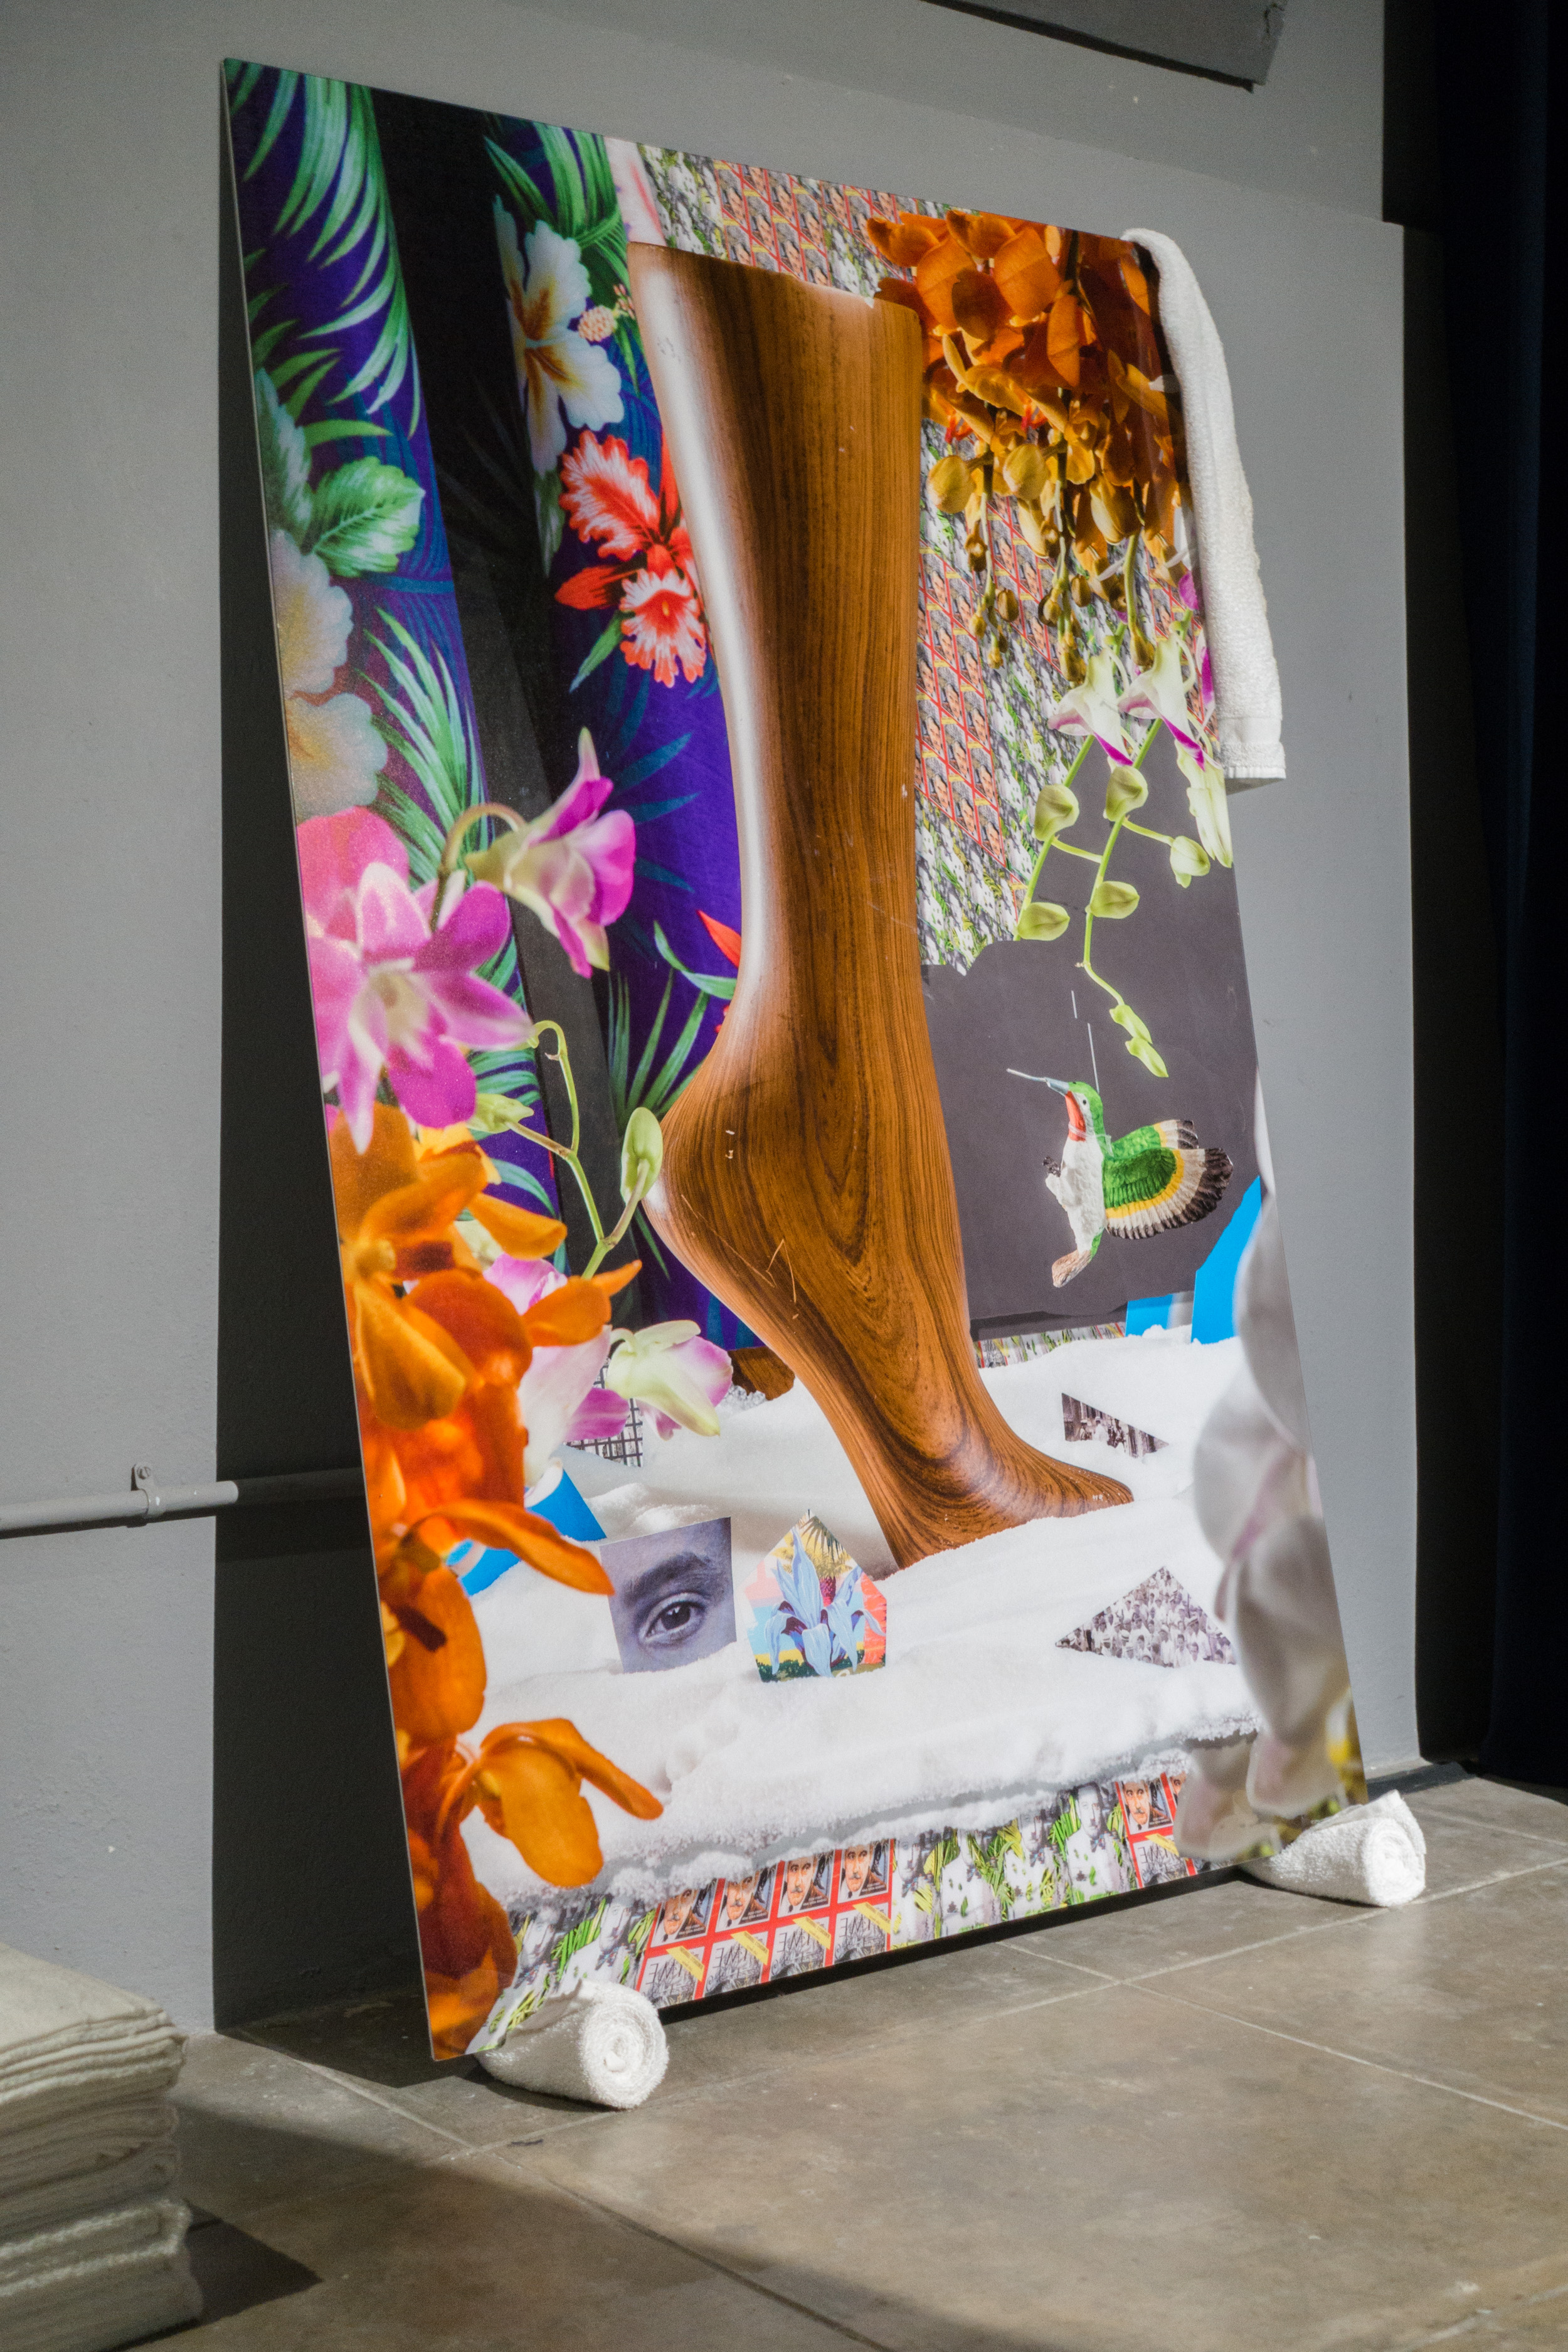 Installation view of Untitled (The King of Towels)